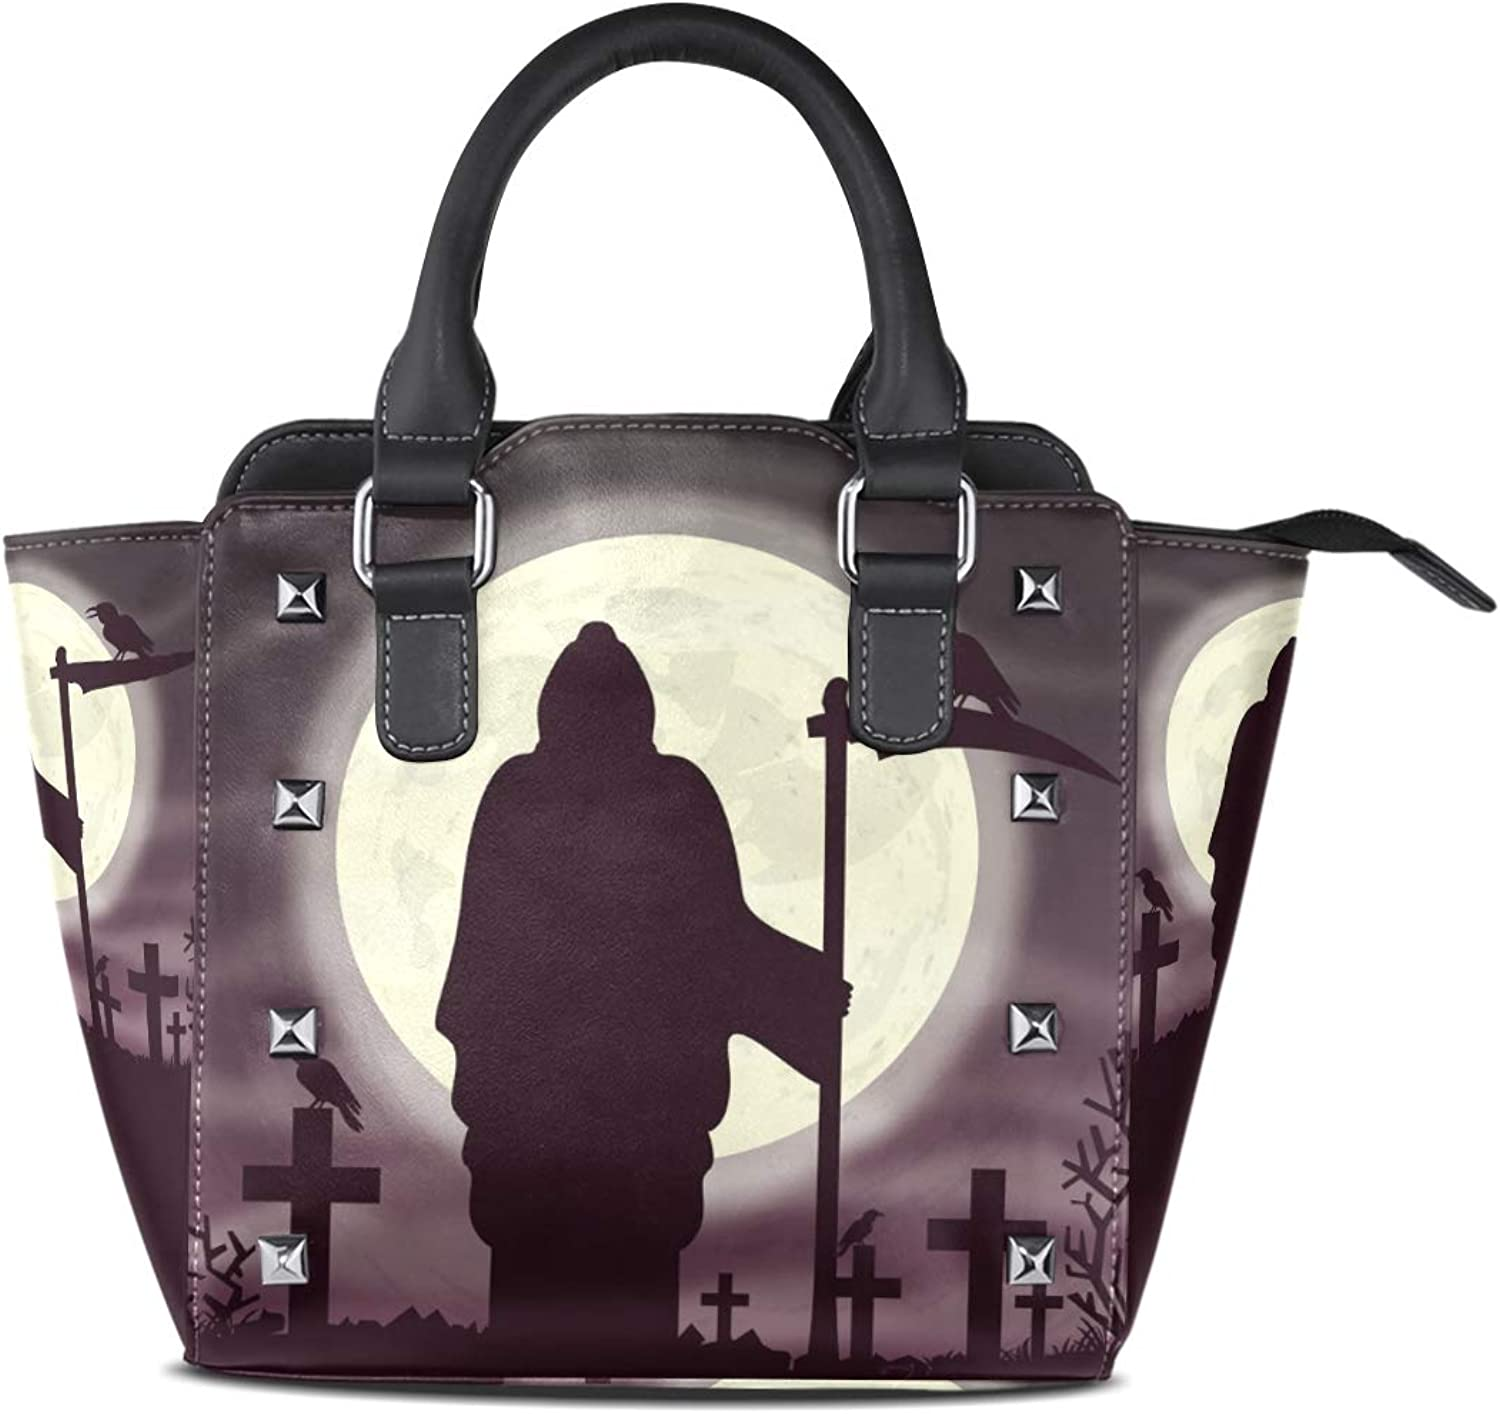 Leather Witch Bird Cemetery Rivet Handbags Tote Bag Shoulder Satchel Purse for Women Girls